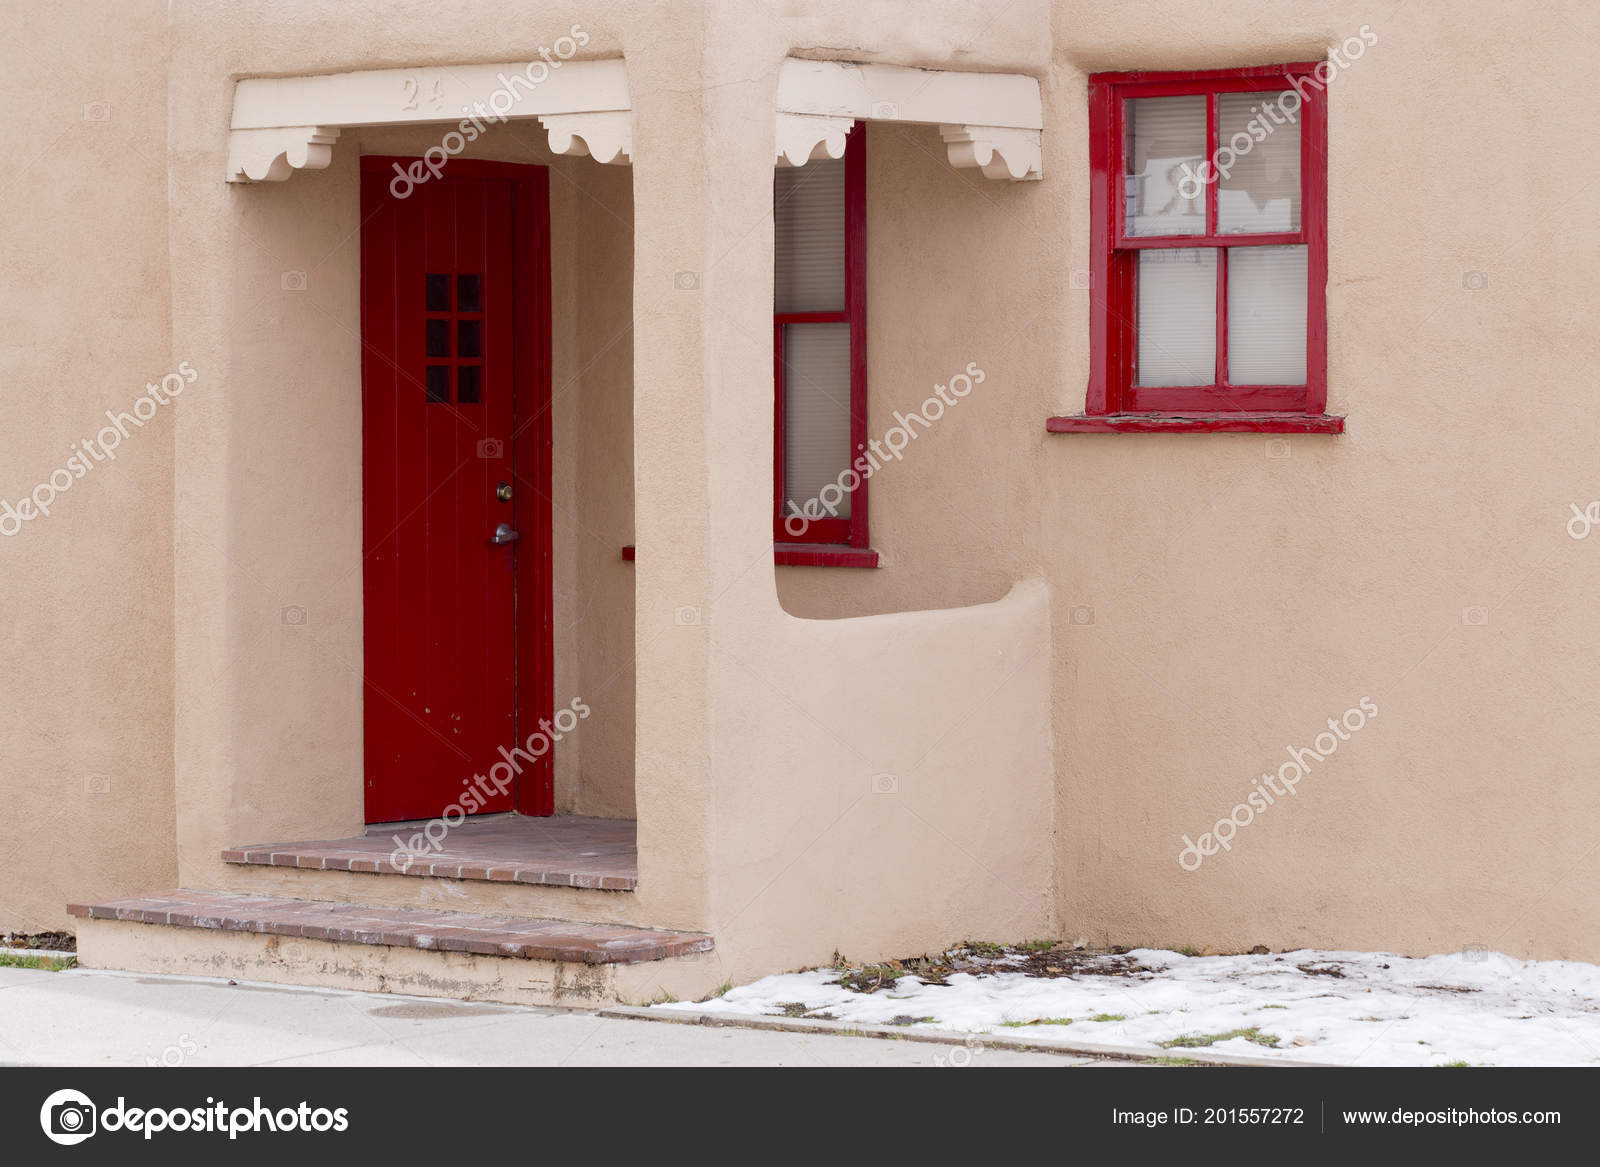 Red Door Red Window Frames Downtown Santa New Mexico Stock